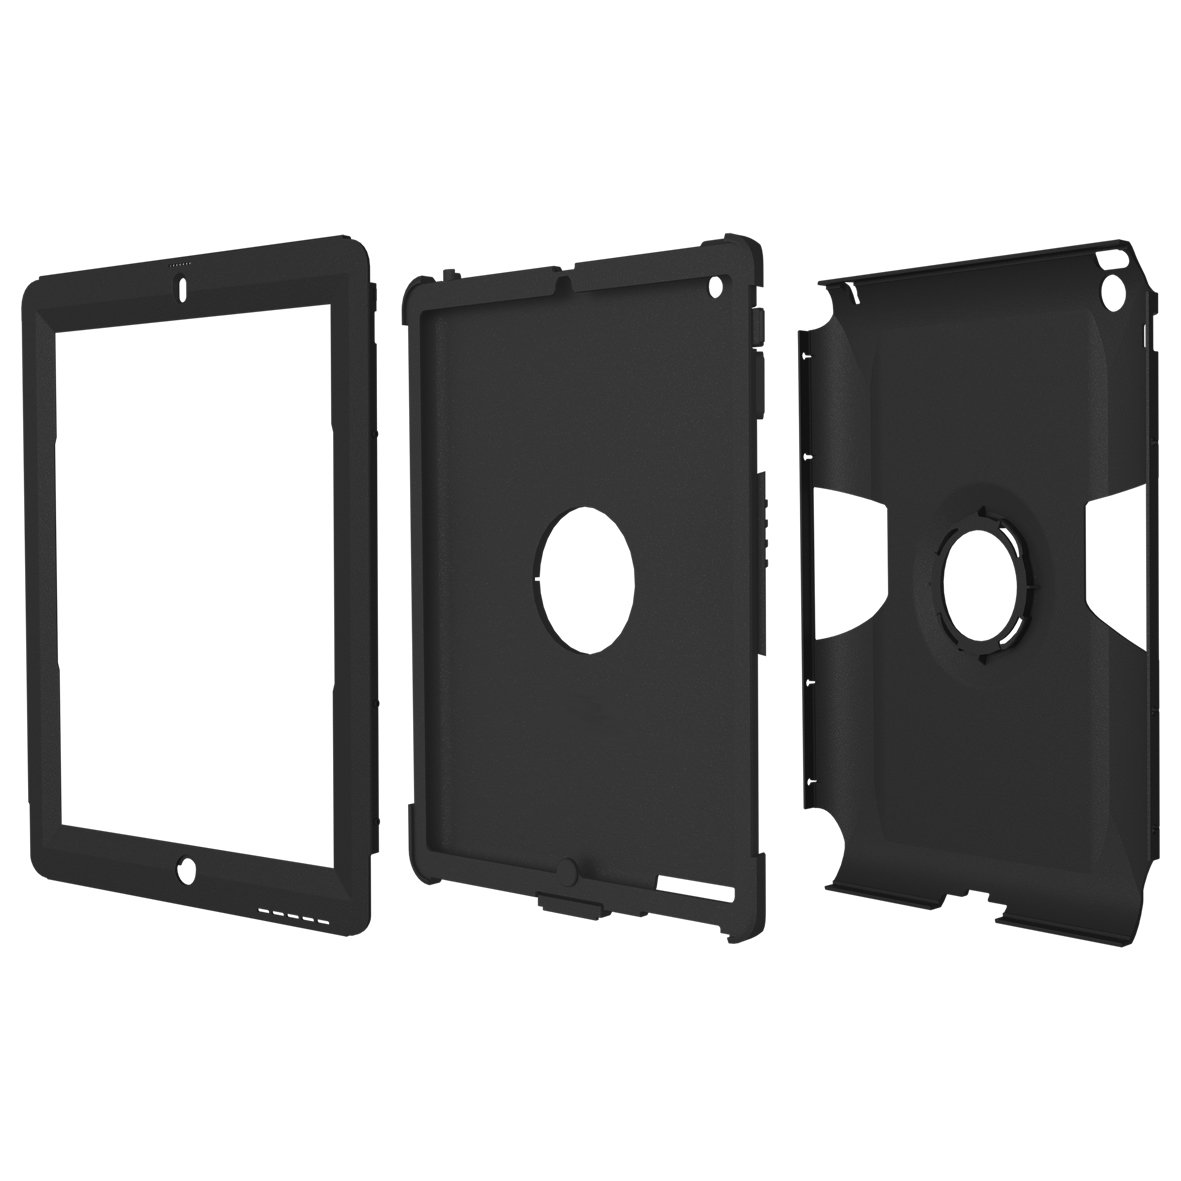 Apple iPad 2 Covers